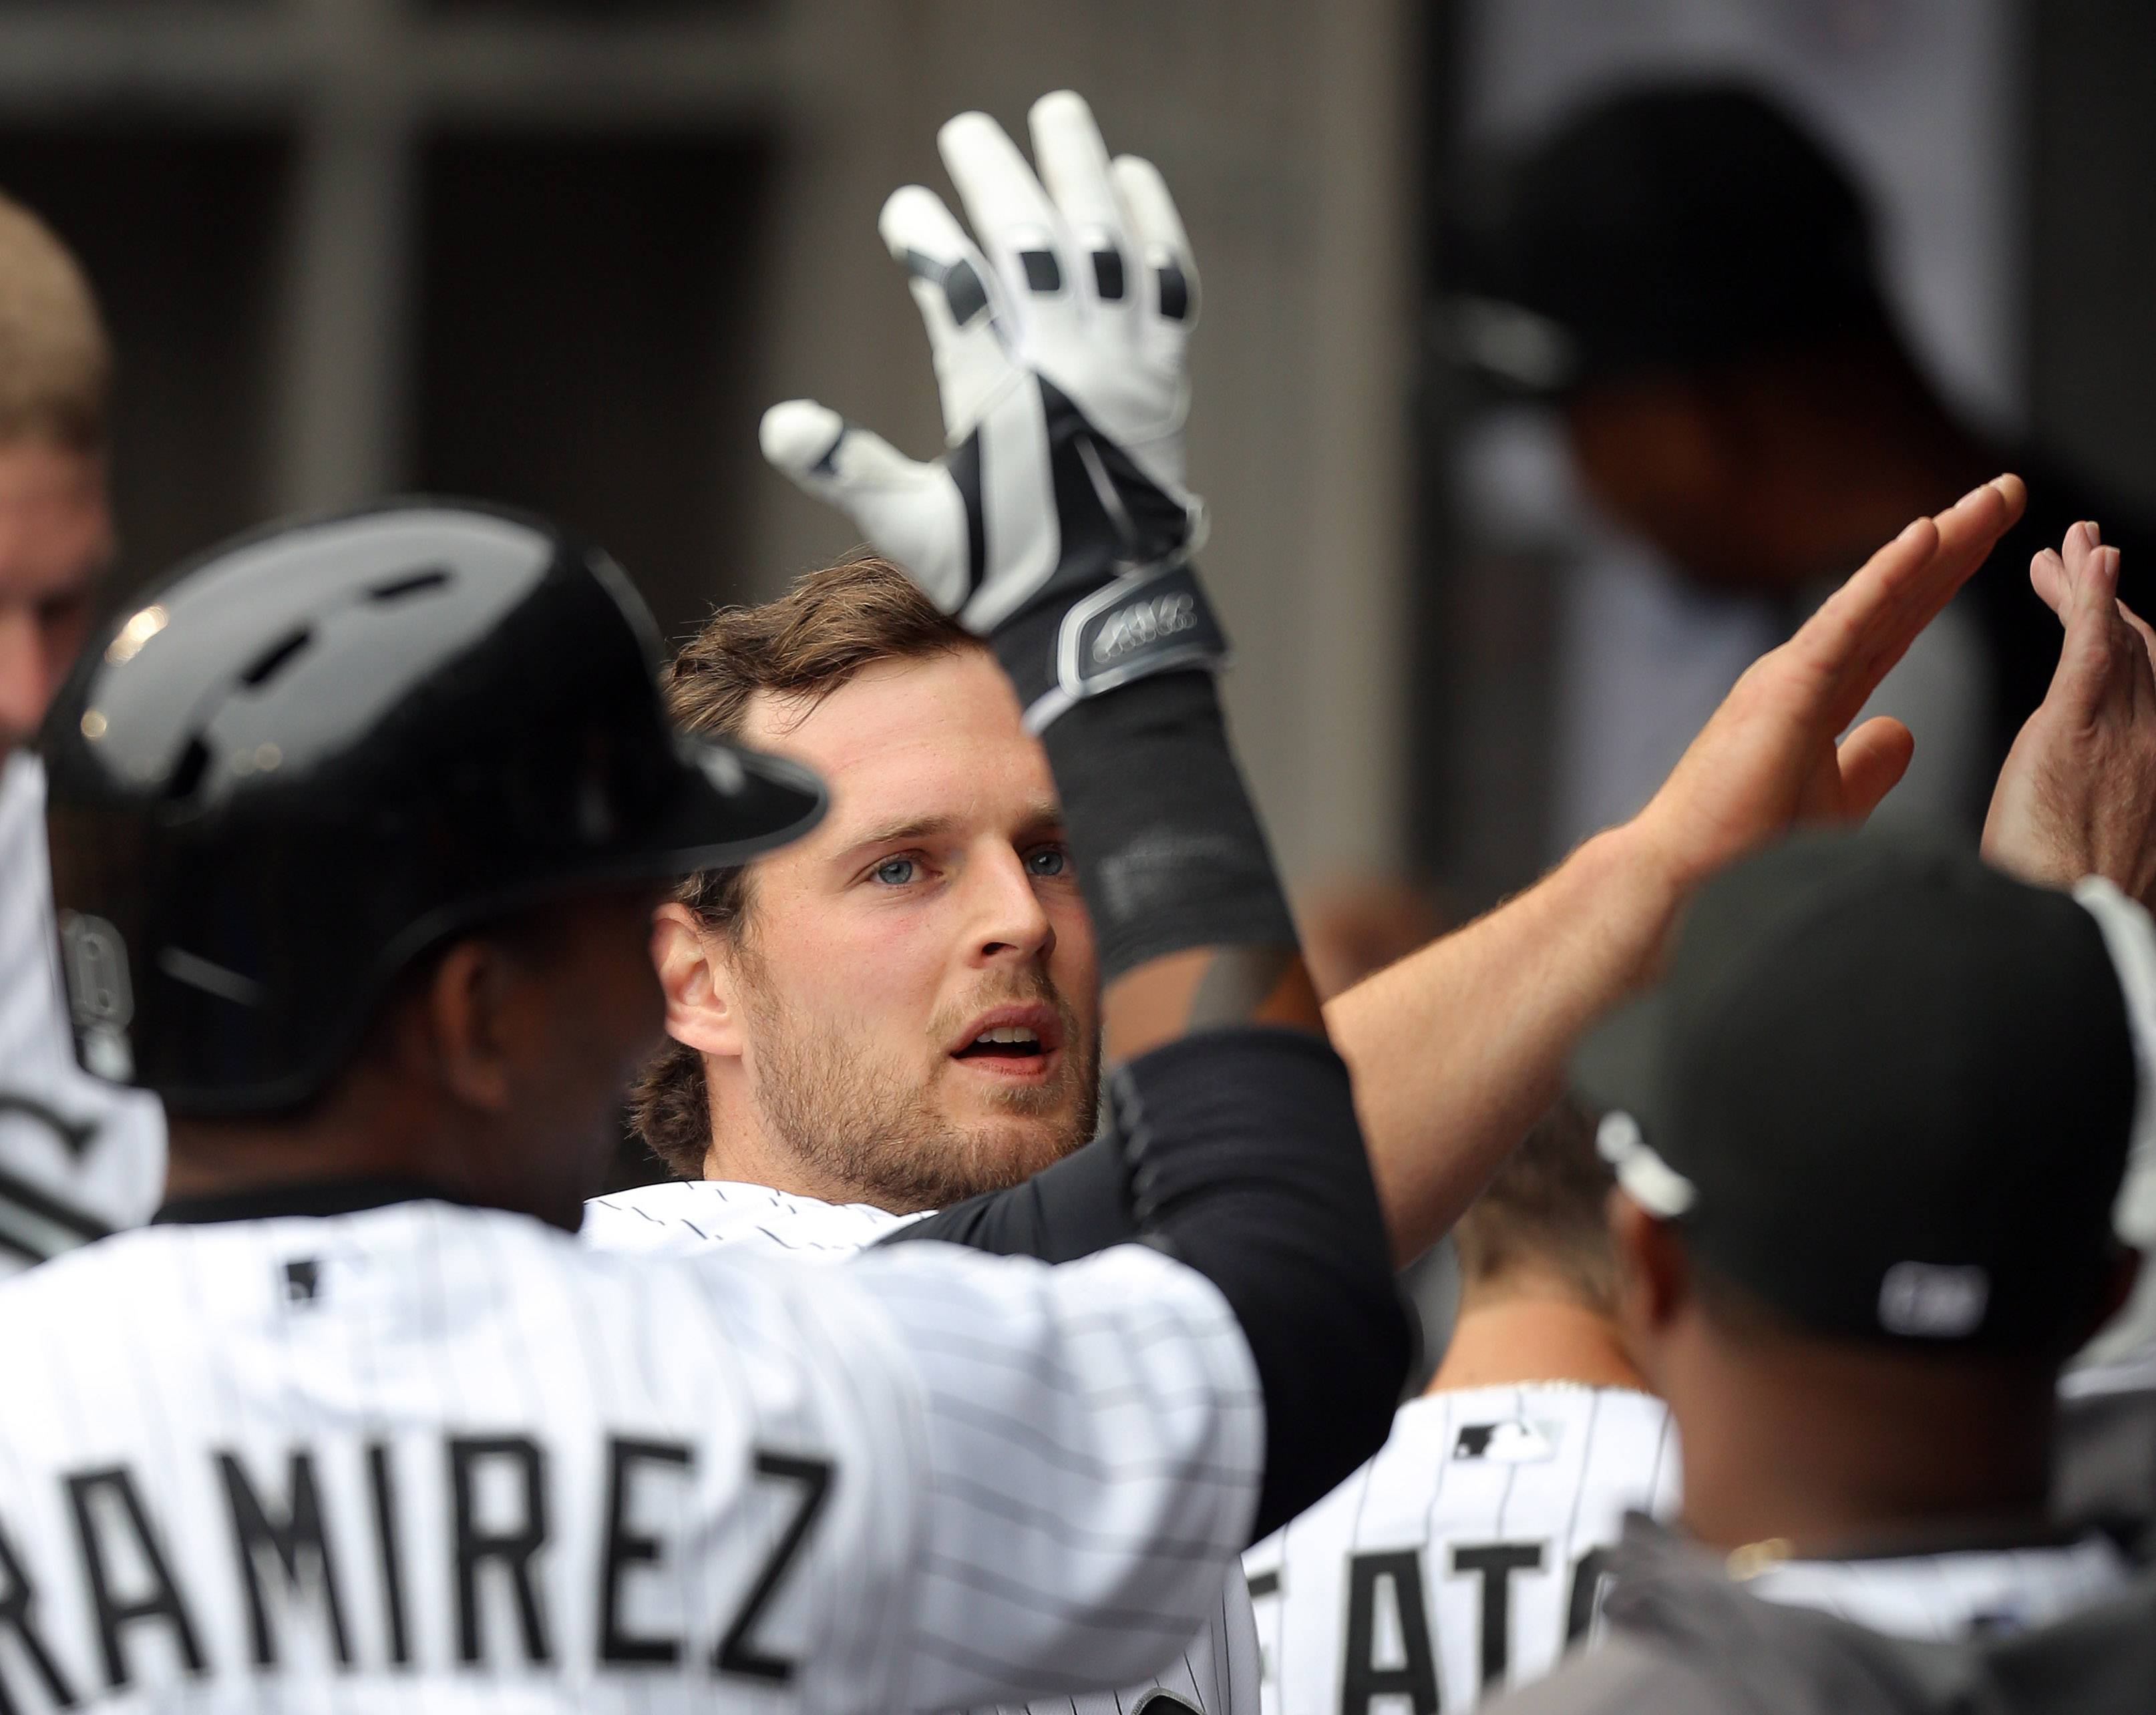 Chicago White Sox third baseman Conor Gillaspie gets high fives after  scoring.